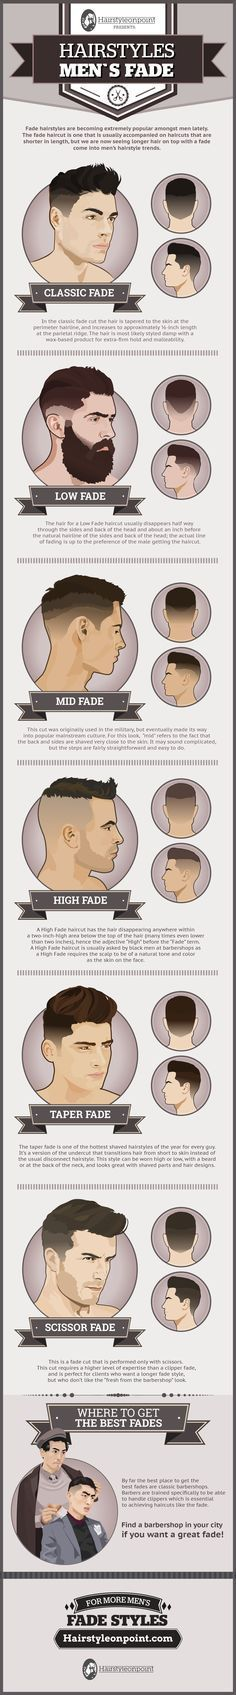 Trendy Hair Styling für Männer mit Undercut 2016 [Infographic] – More İdeas Trendy Haircuts, Haircuts For Men, Haircut Men, Haircut Style, How To Fade Haircut, Low Fade Mens Haircut, Hairstyle Fade, Taper Fade Haircut, Barber Haircuts